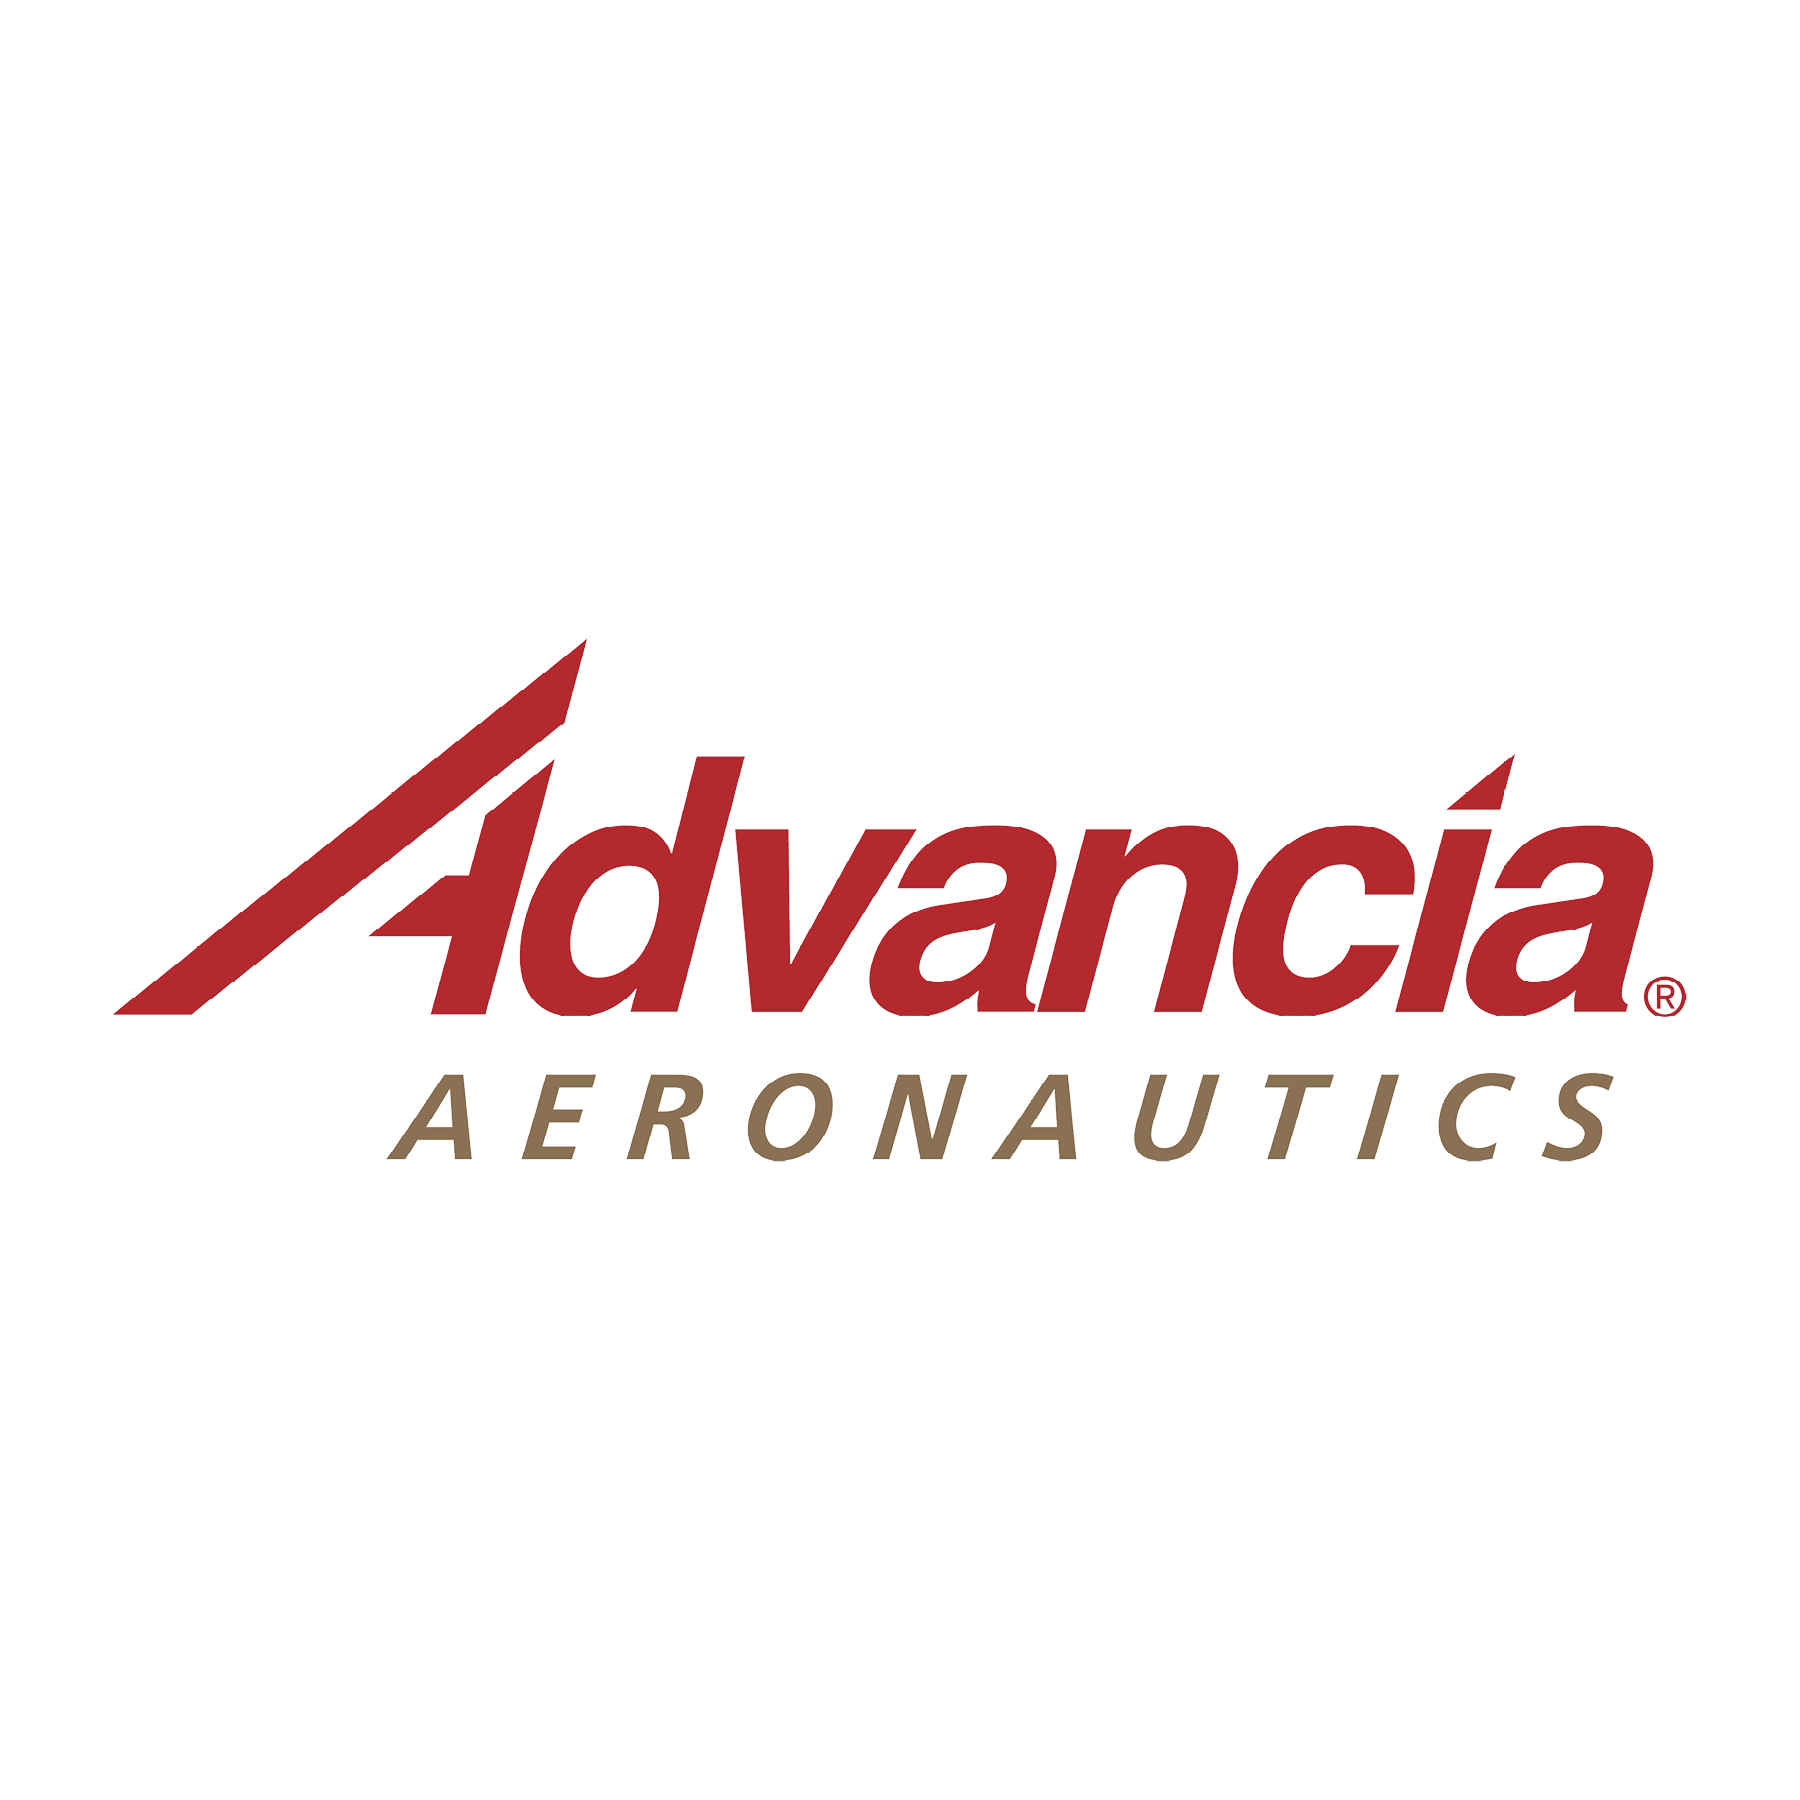 Advancia Aeronautics is 8(a) certified through the Small Business Administration and is a diversified technical services providing high-quality patient care through physician staffing to Department of Defense Military Treatment Facilities (MTFs).